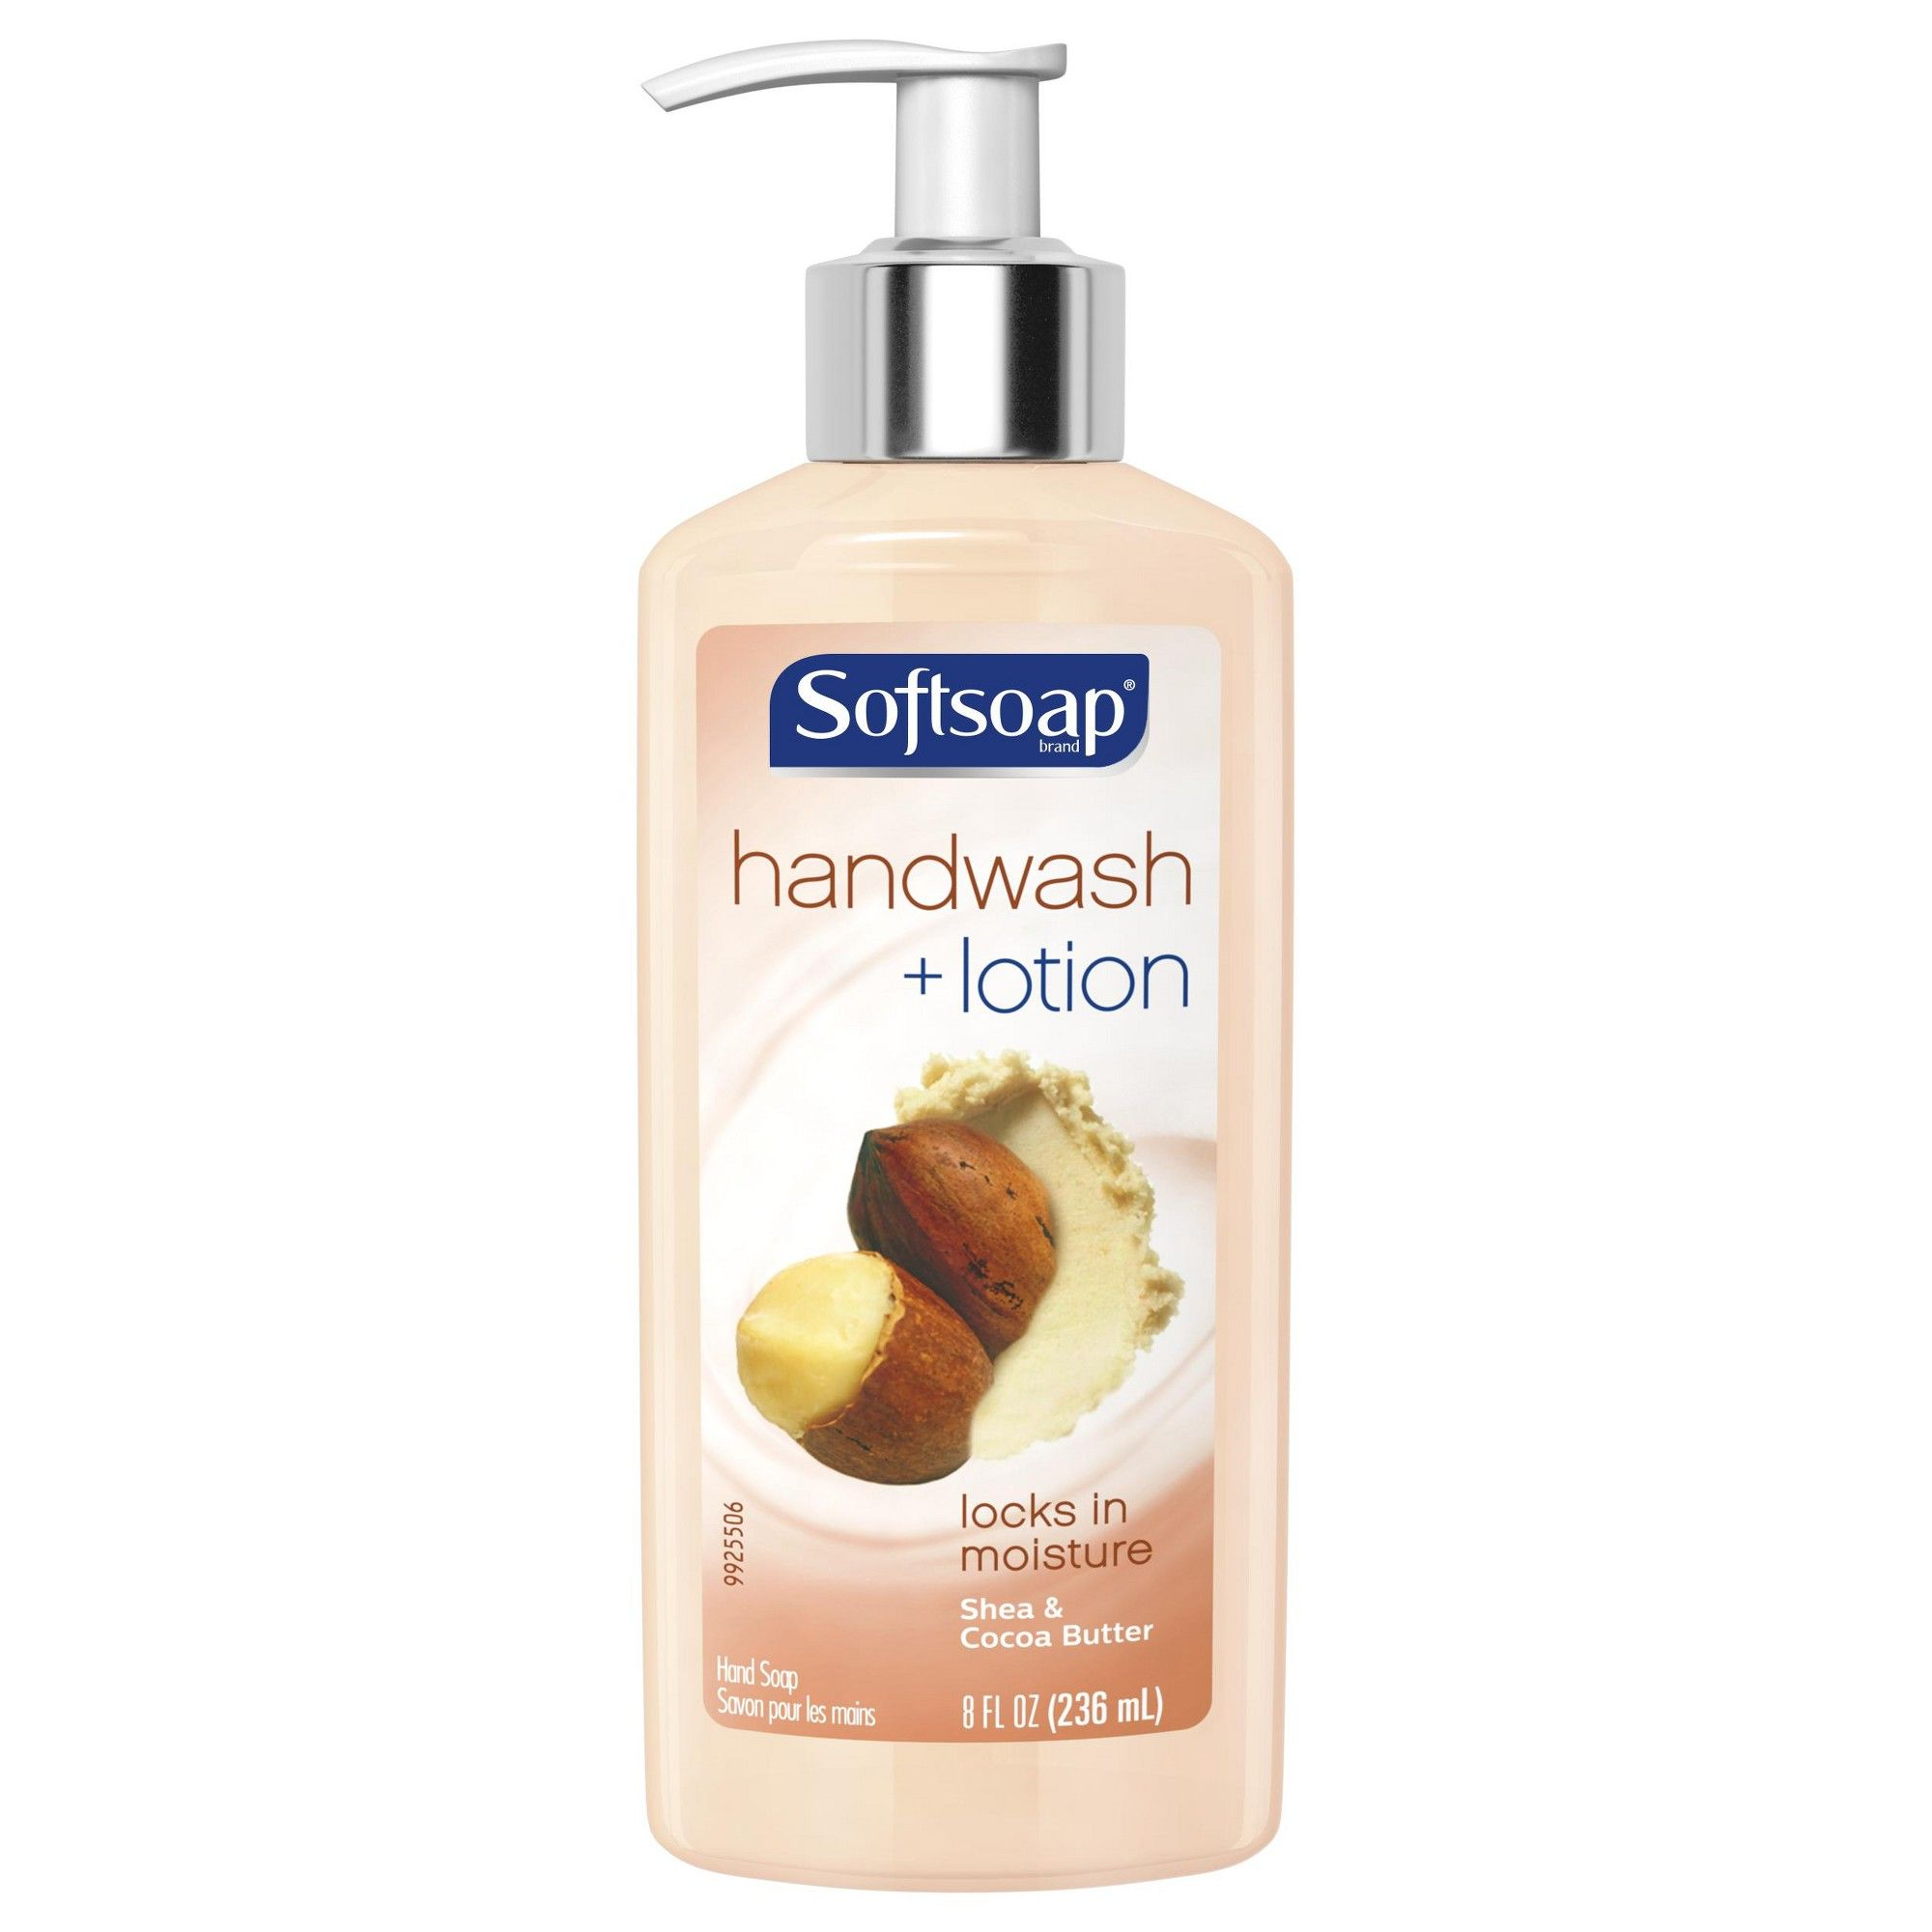 Softsoap Hand Wash Plus Lotion Pump Shea And Cocoa Butter 8 Fl